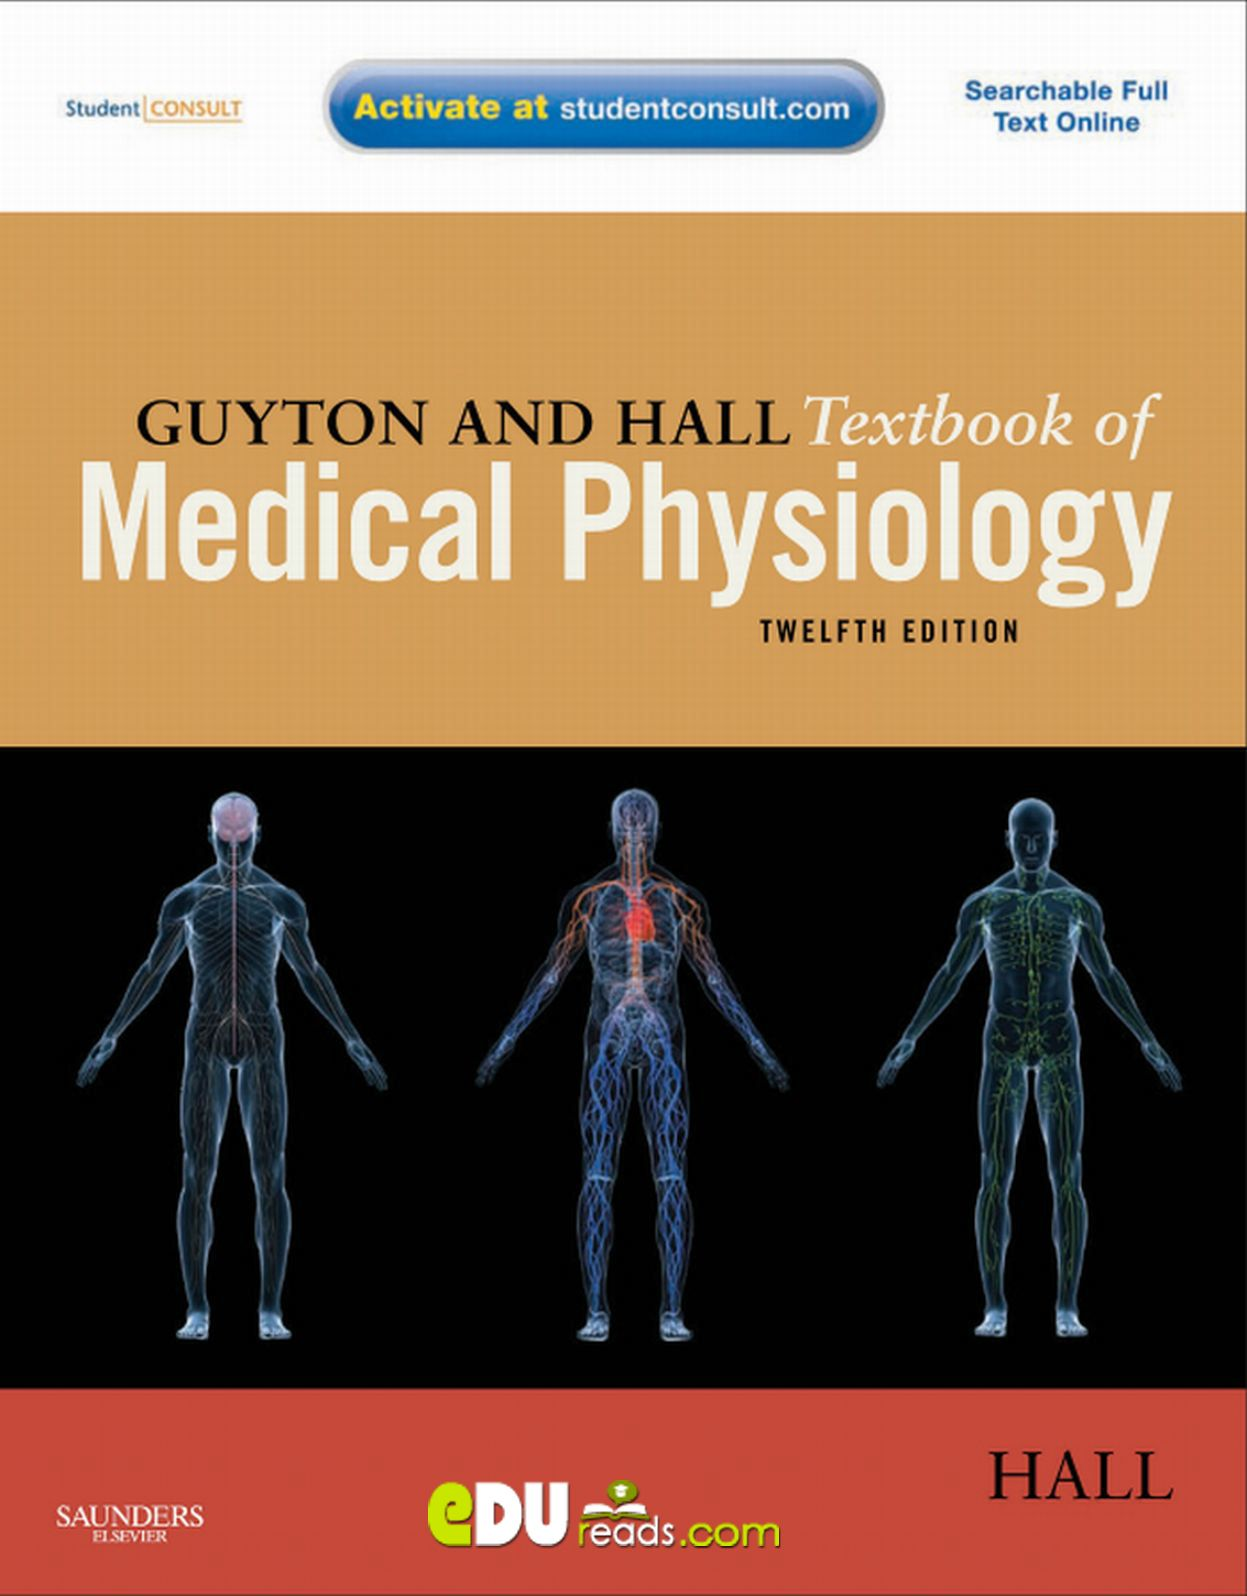 GUYTON AND HALL TEXTBOOK OF MEDICAL PHYSIOLOGY 12TH EDITION - This ...